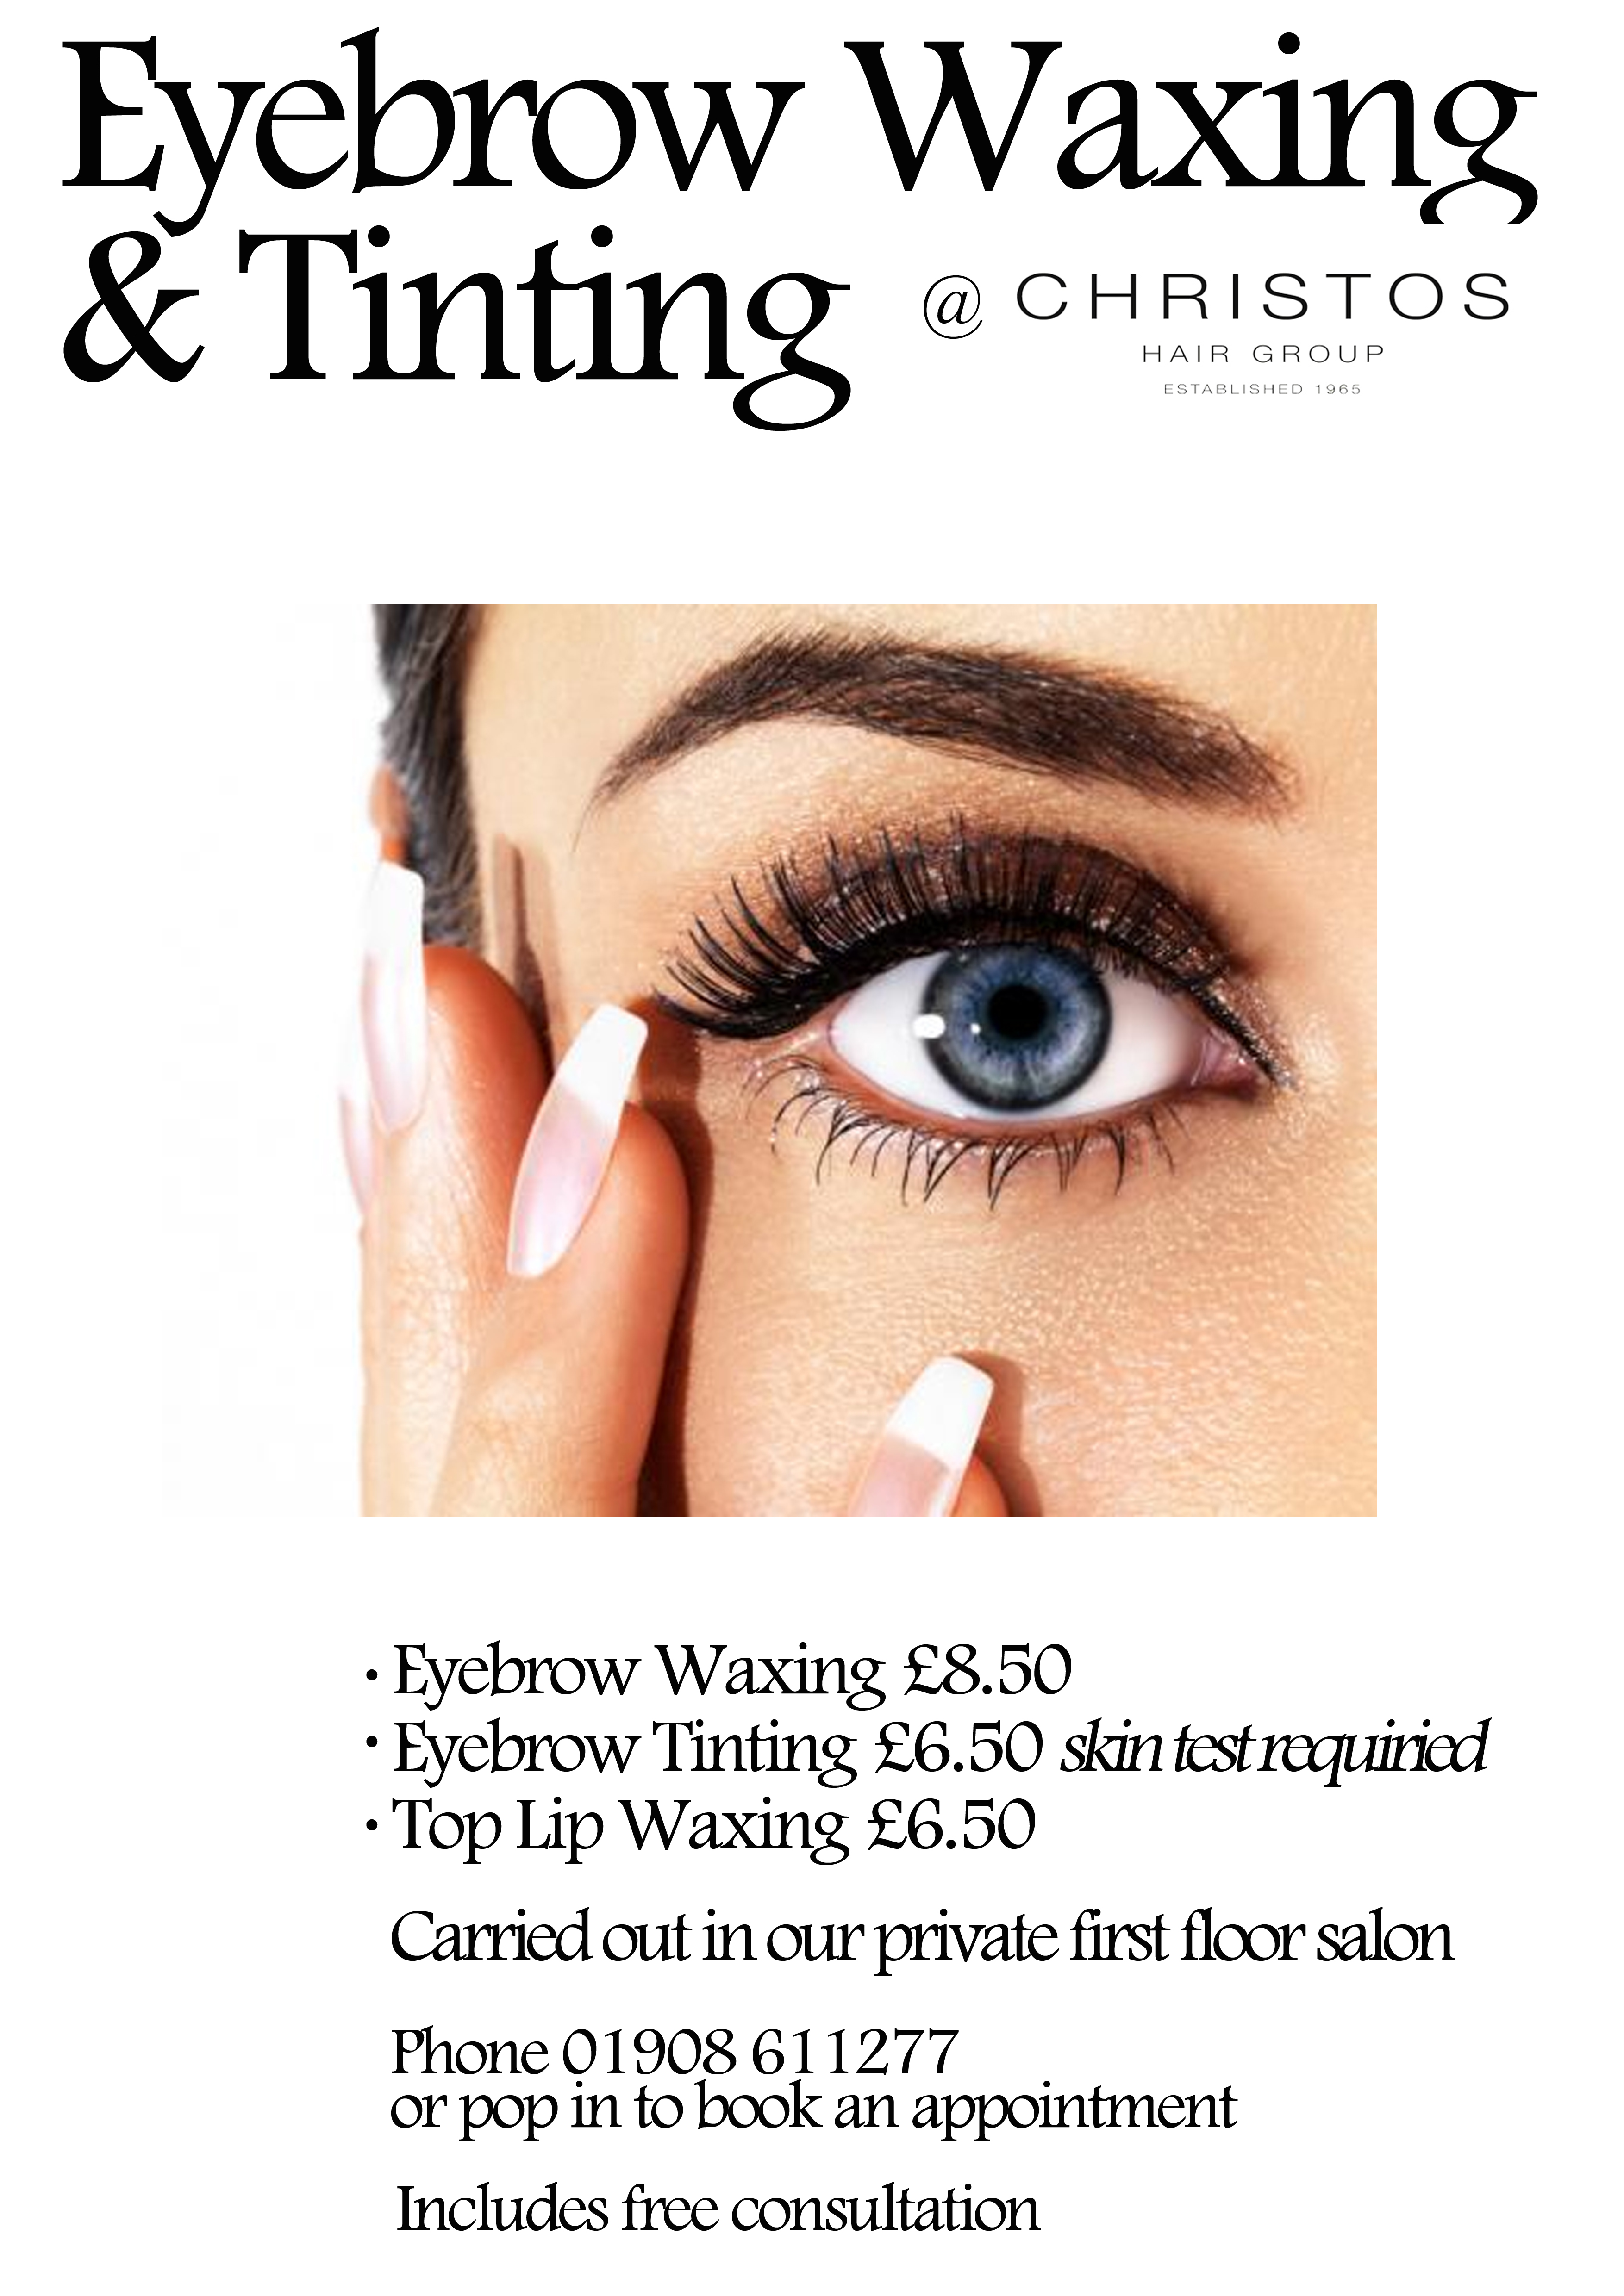 By having your eyebrows waxed it helps with the application of your